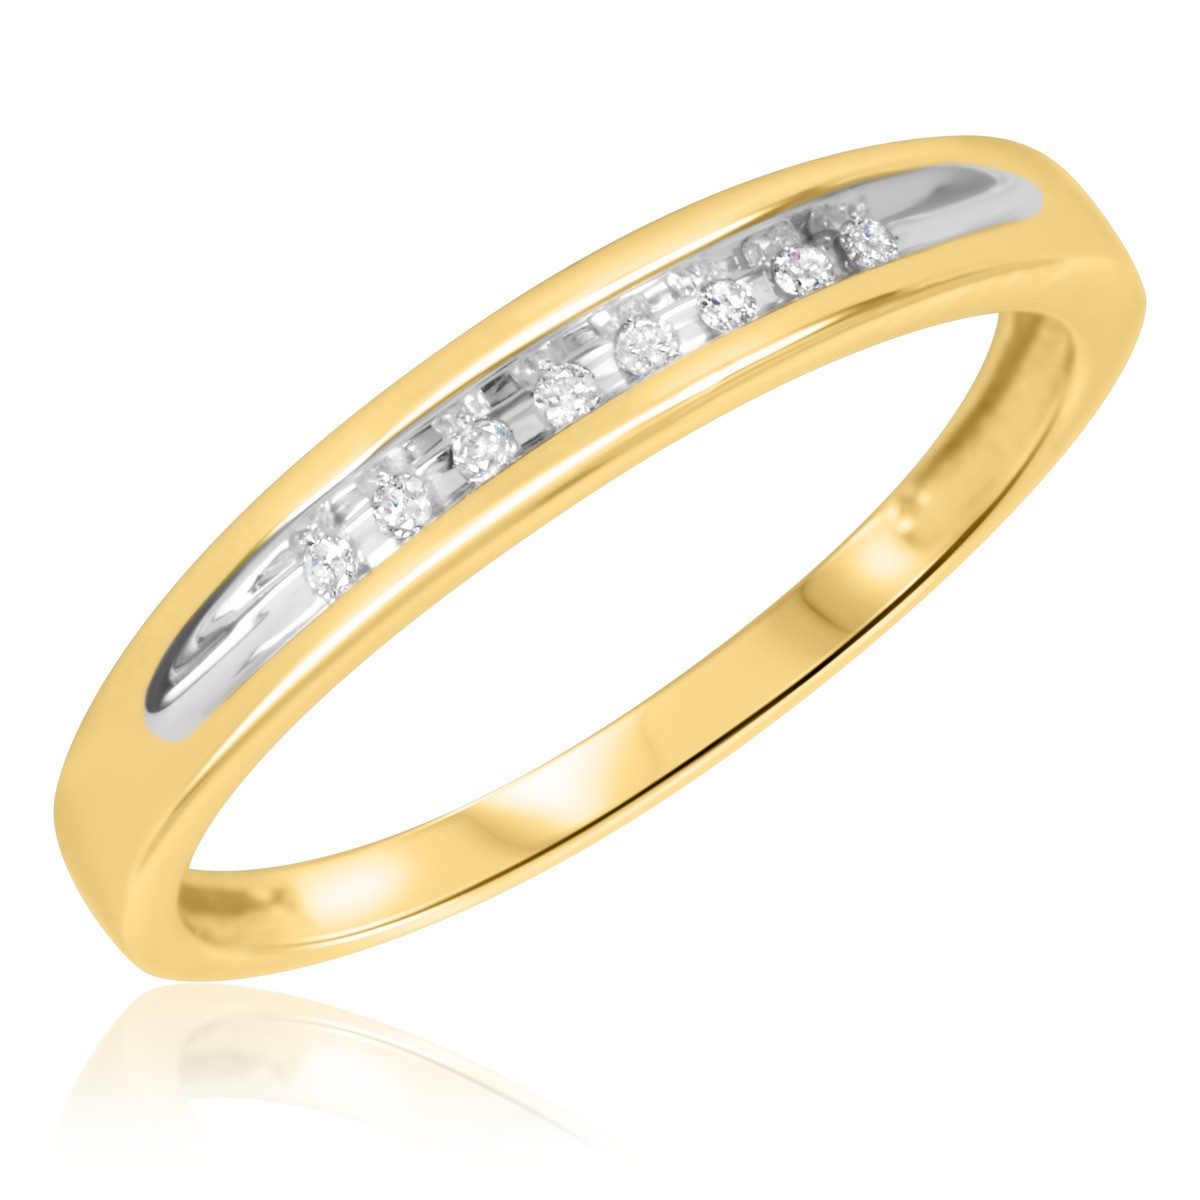 1/20 Carat T.W. Diamond Ladies' Wedding Band 10K Yellow Gold